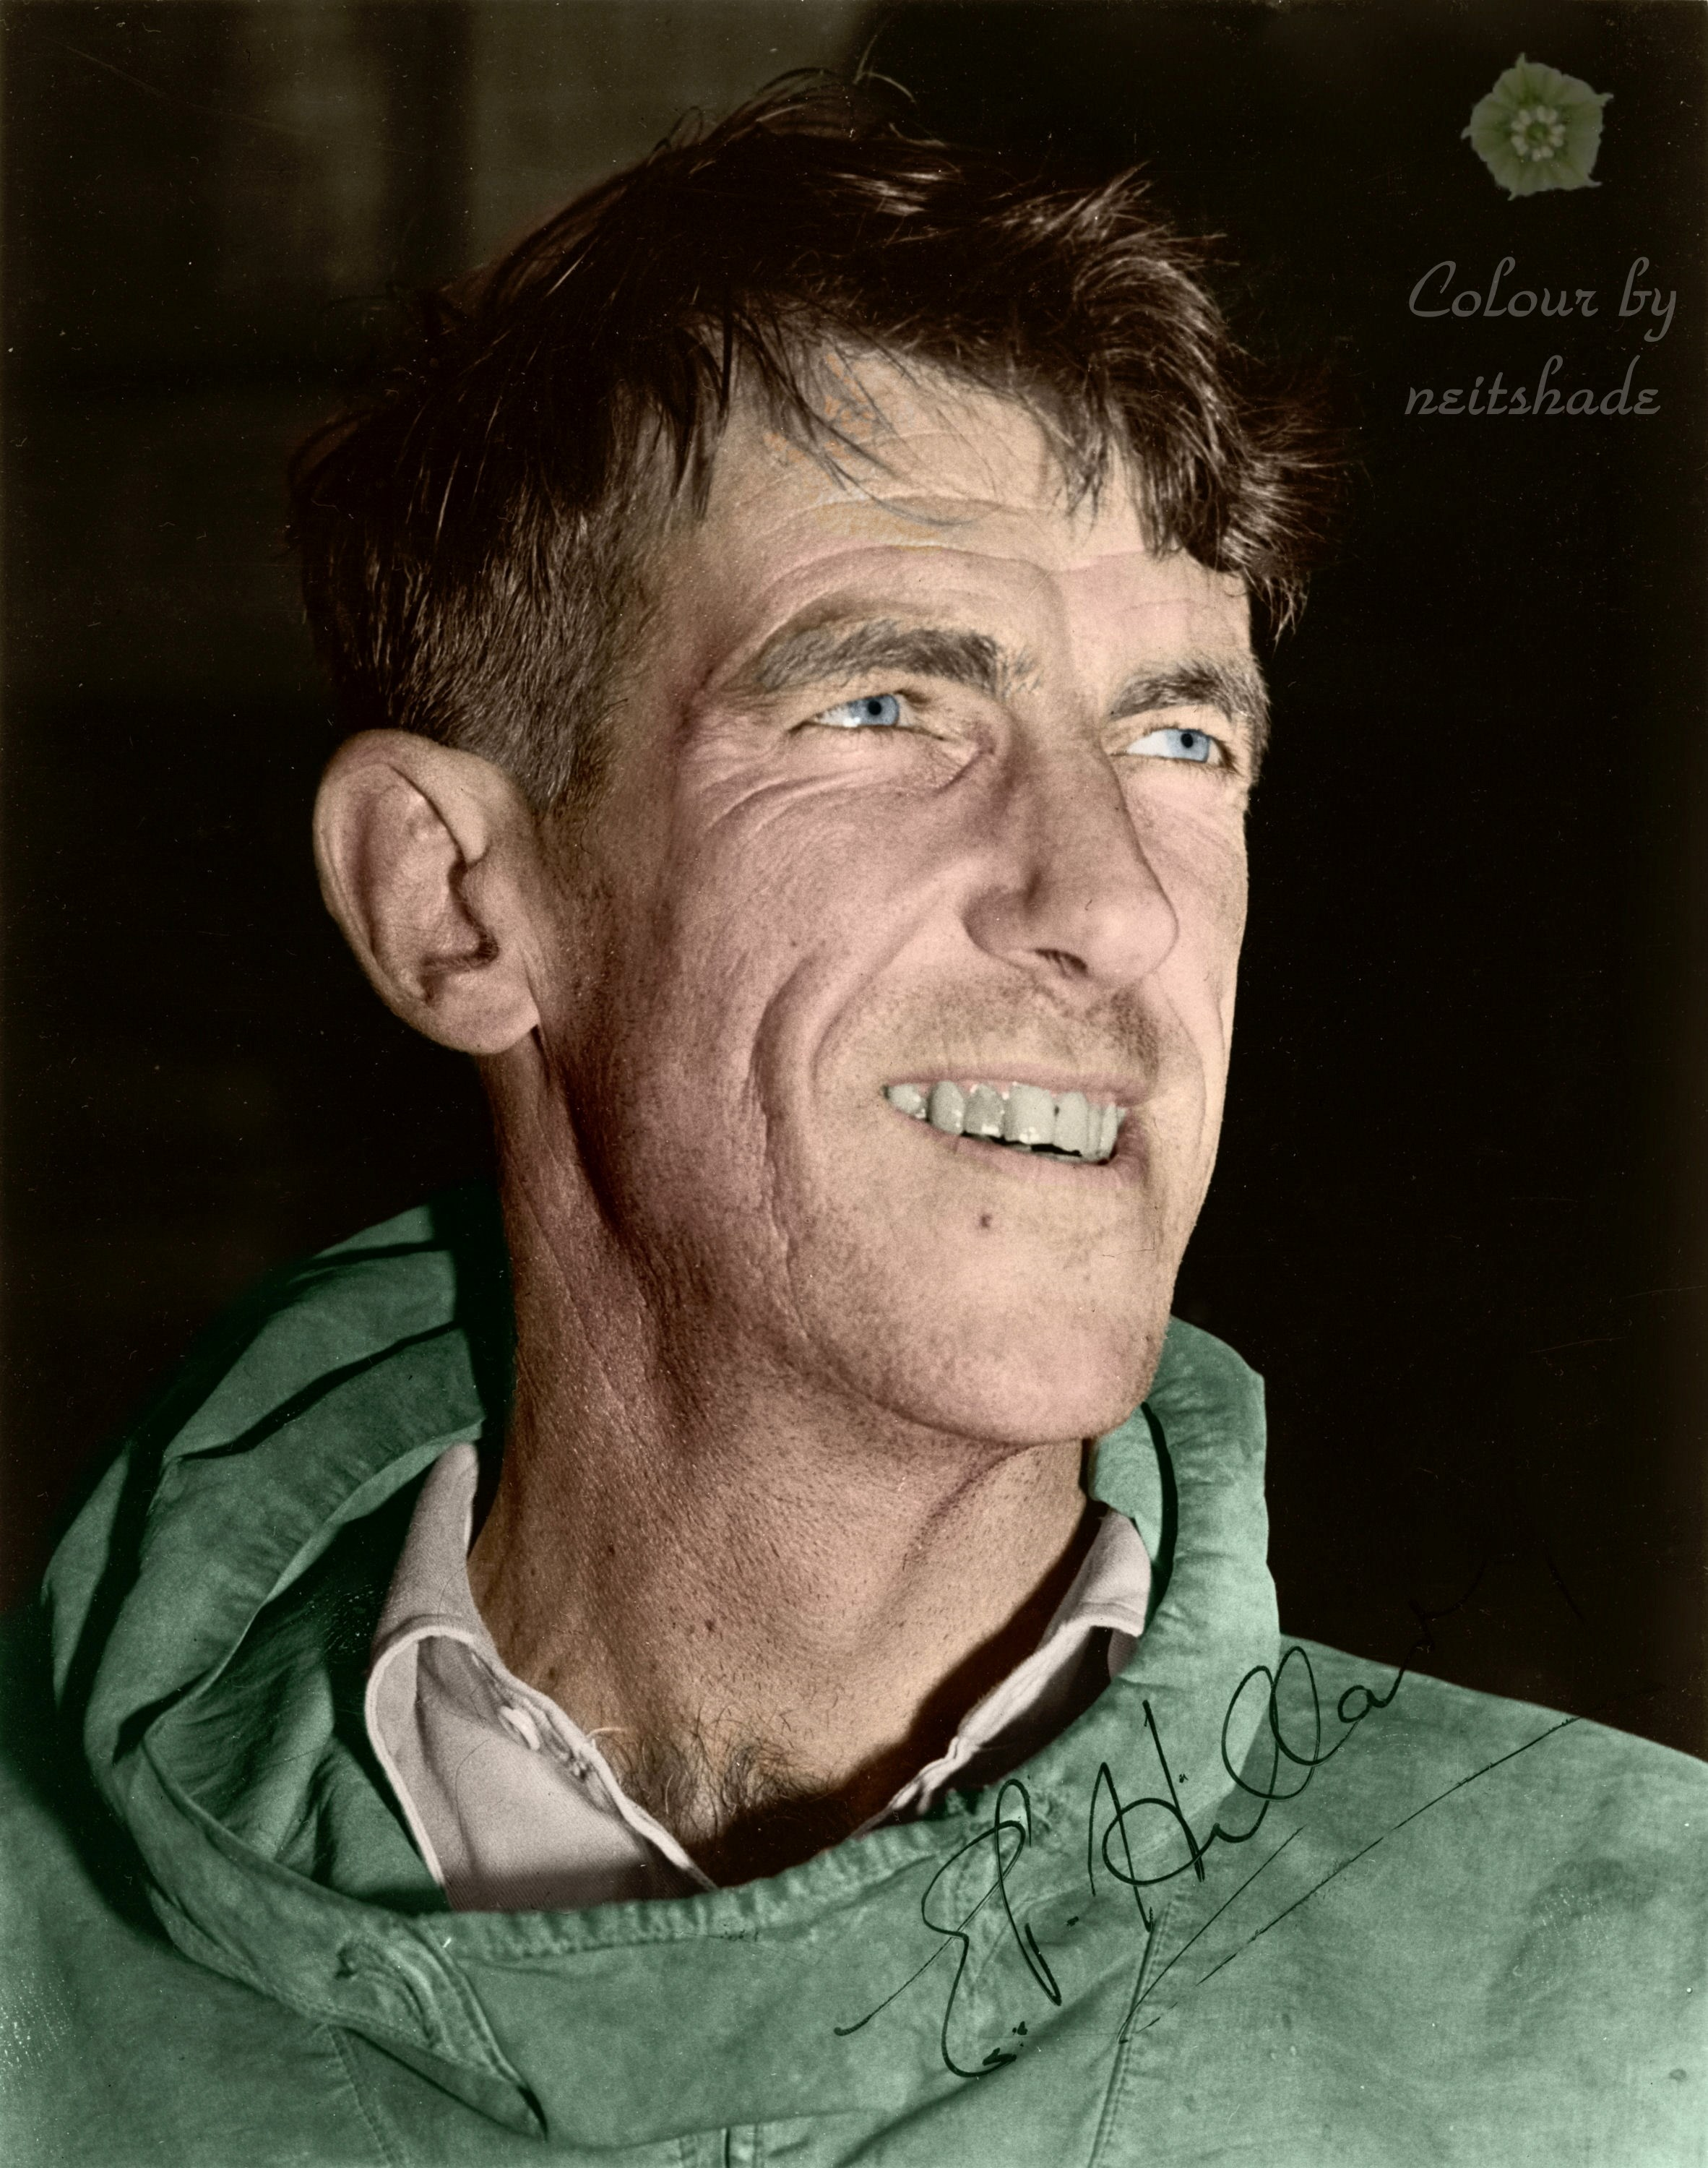 Edmund_Hillary,_c._1953,_with_autograph